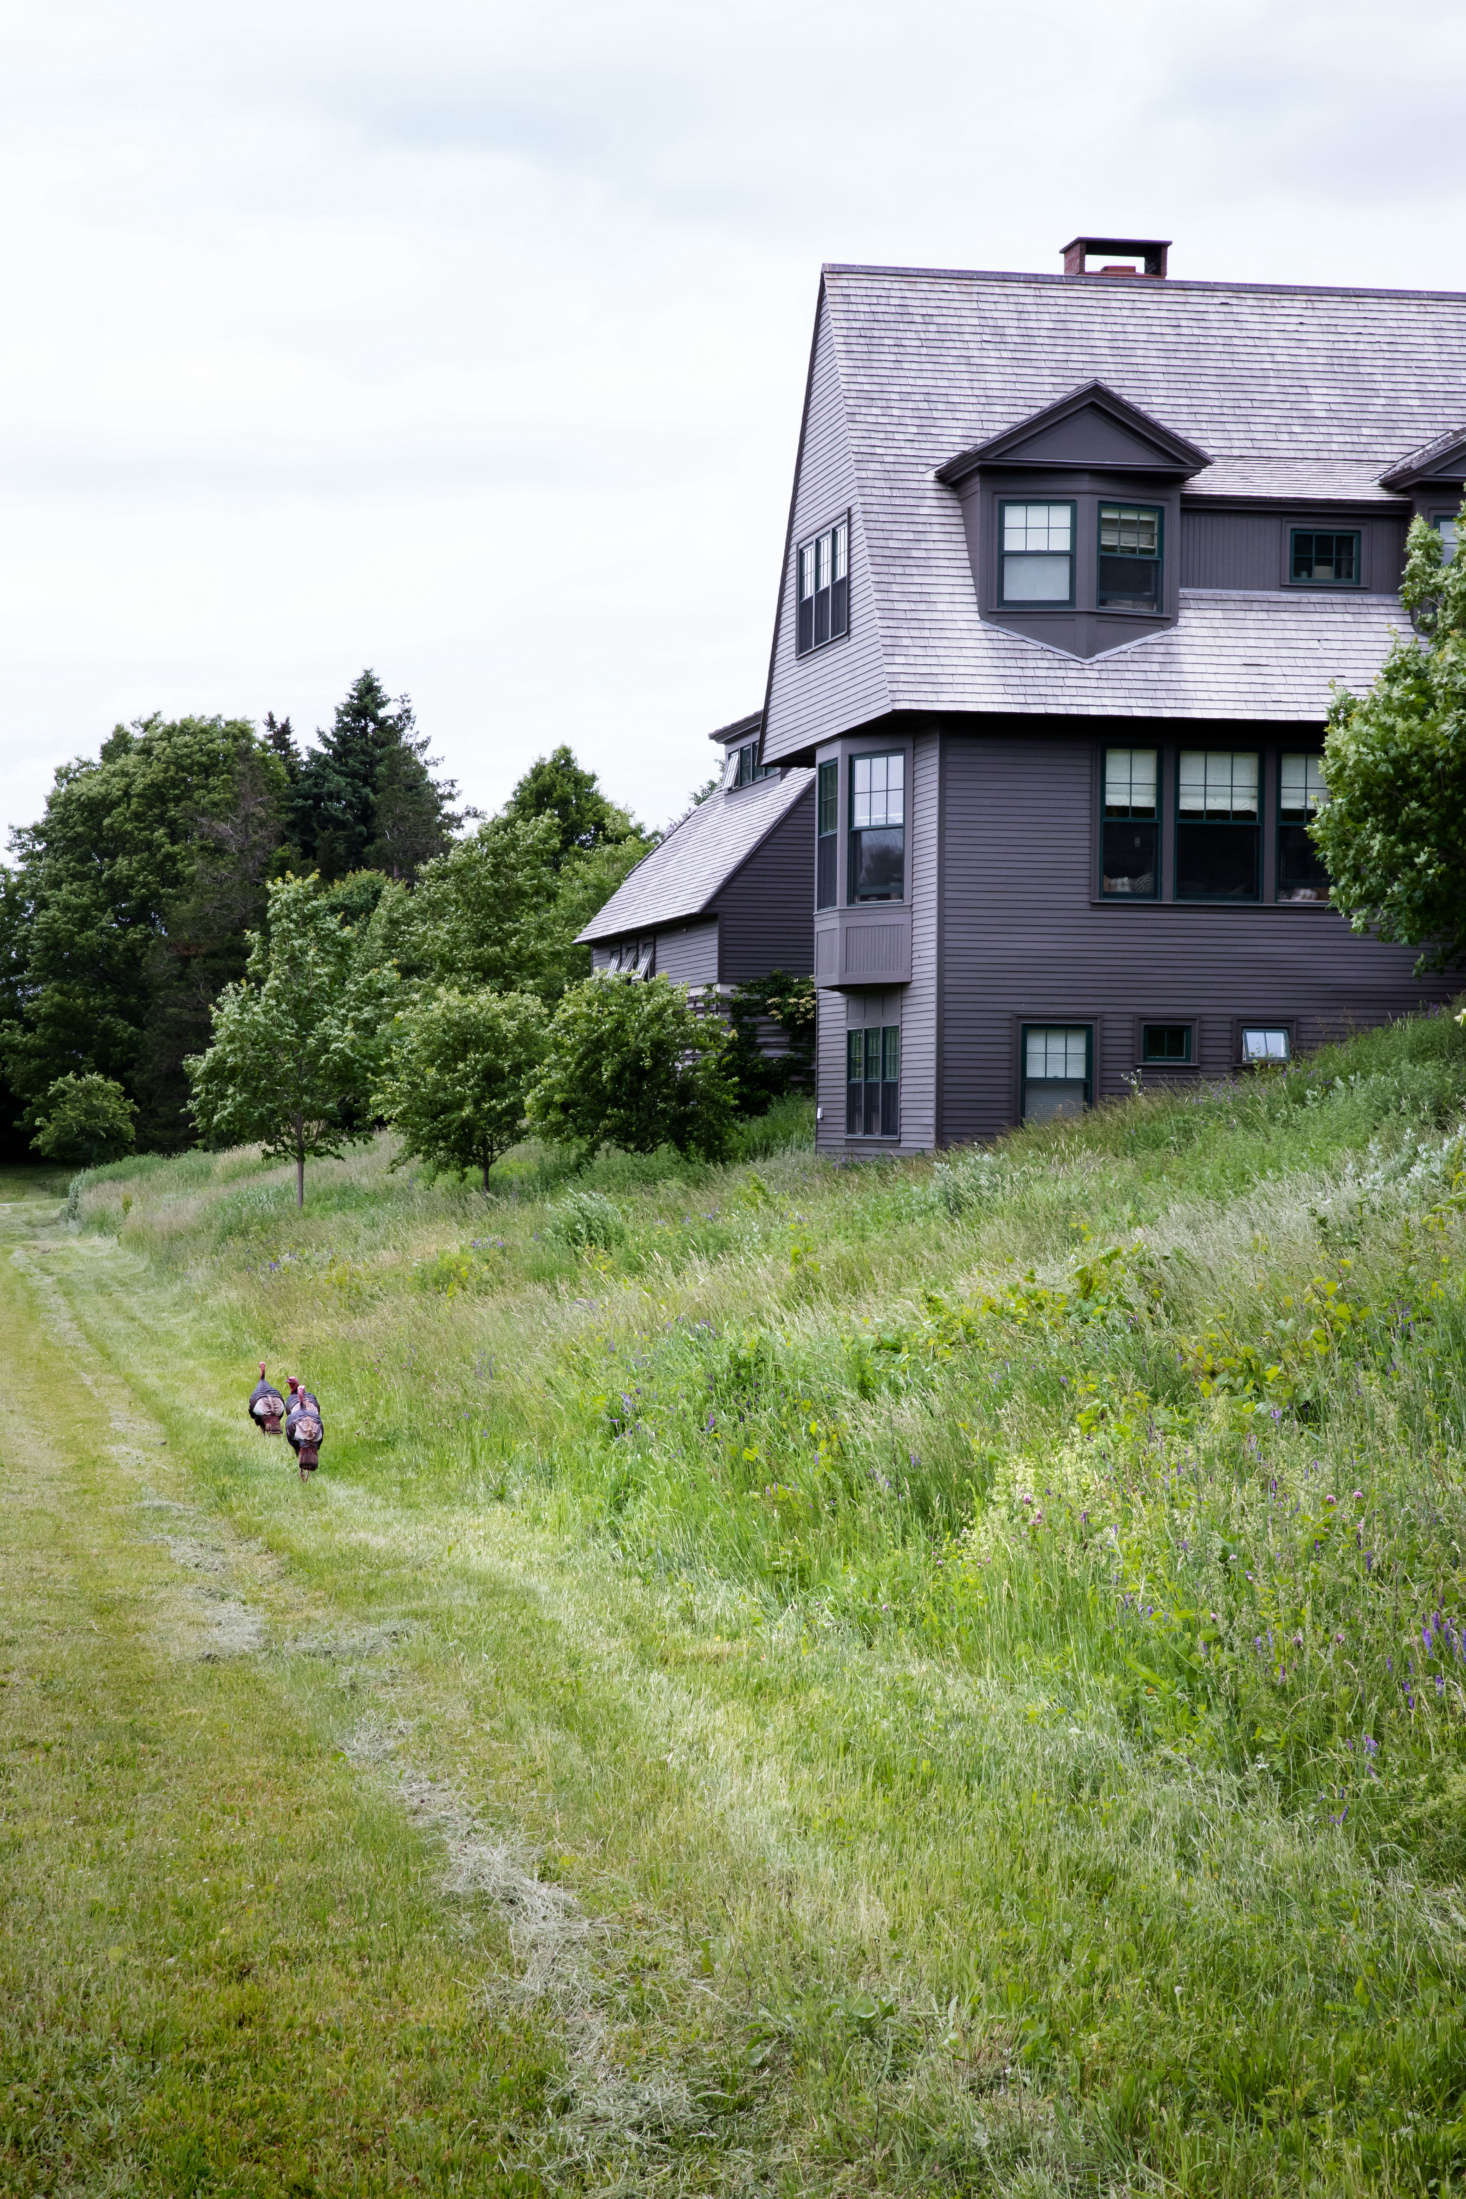 Nestled into the hillside meadow, the house takes full advantage of the open view.